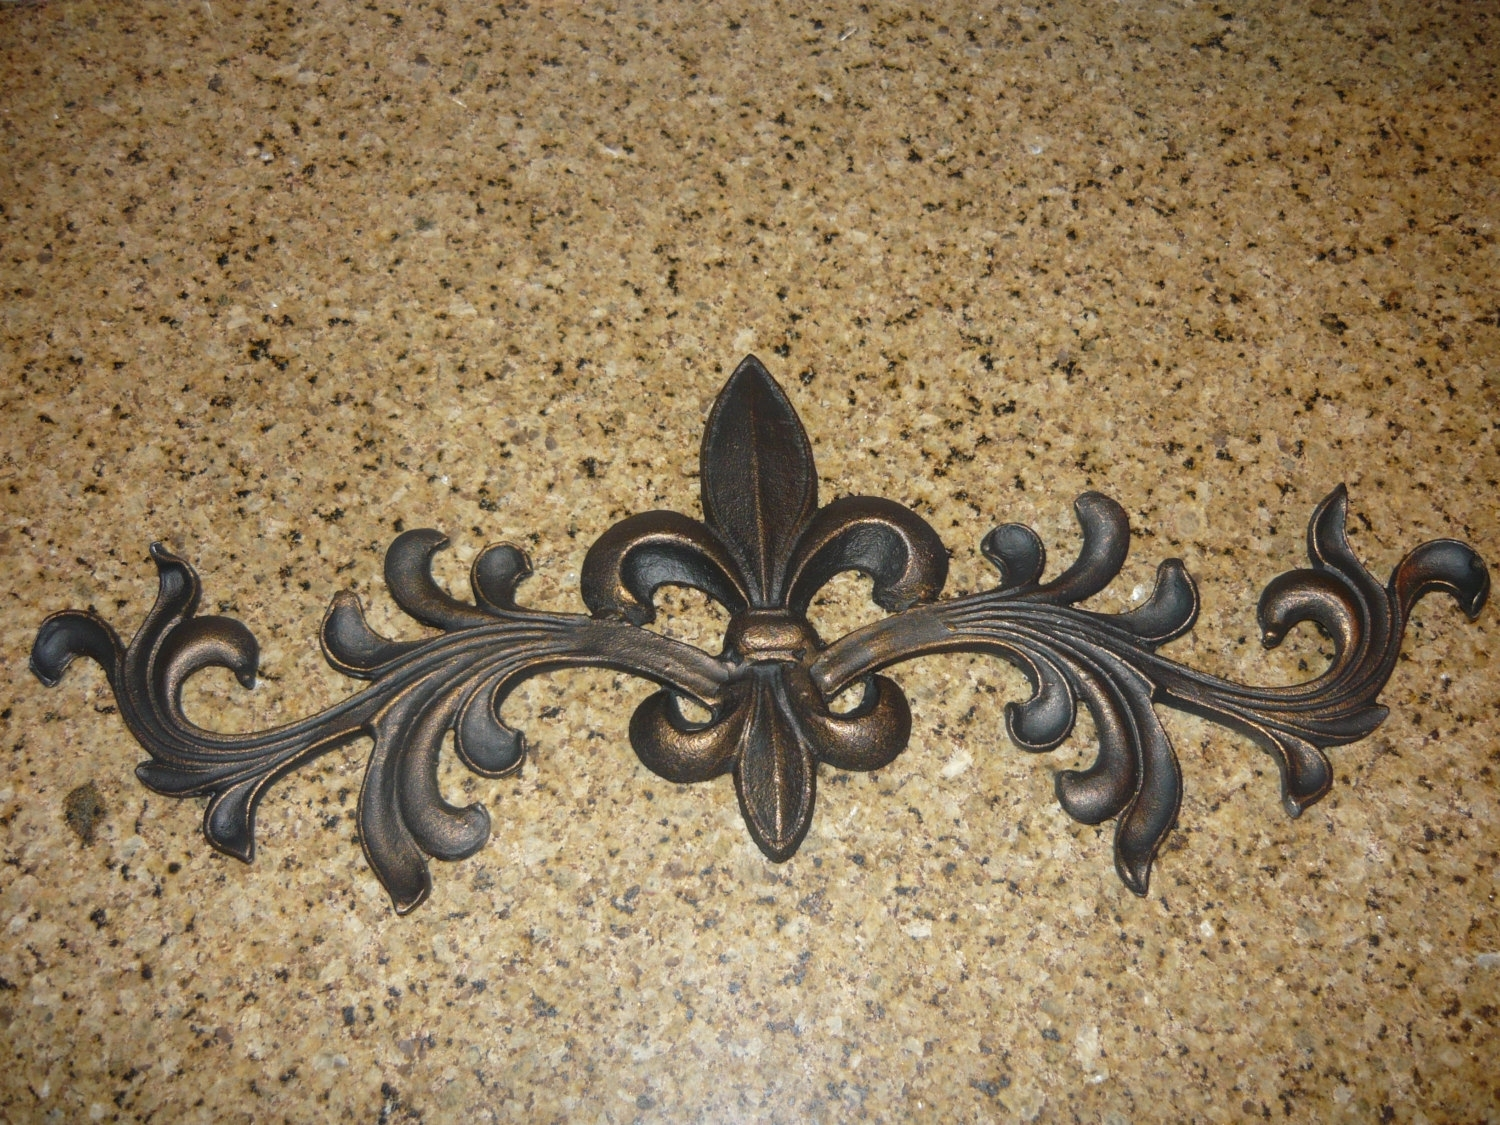 Amazing Fleur De Lis Metal Wall Decor Modern Home Lakaysports Com Intended For Latest Fleur De Lis Wall Art (View 2 of 20)